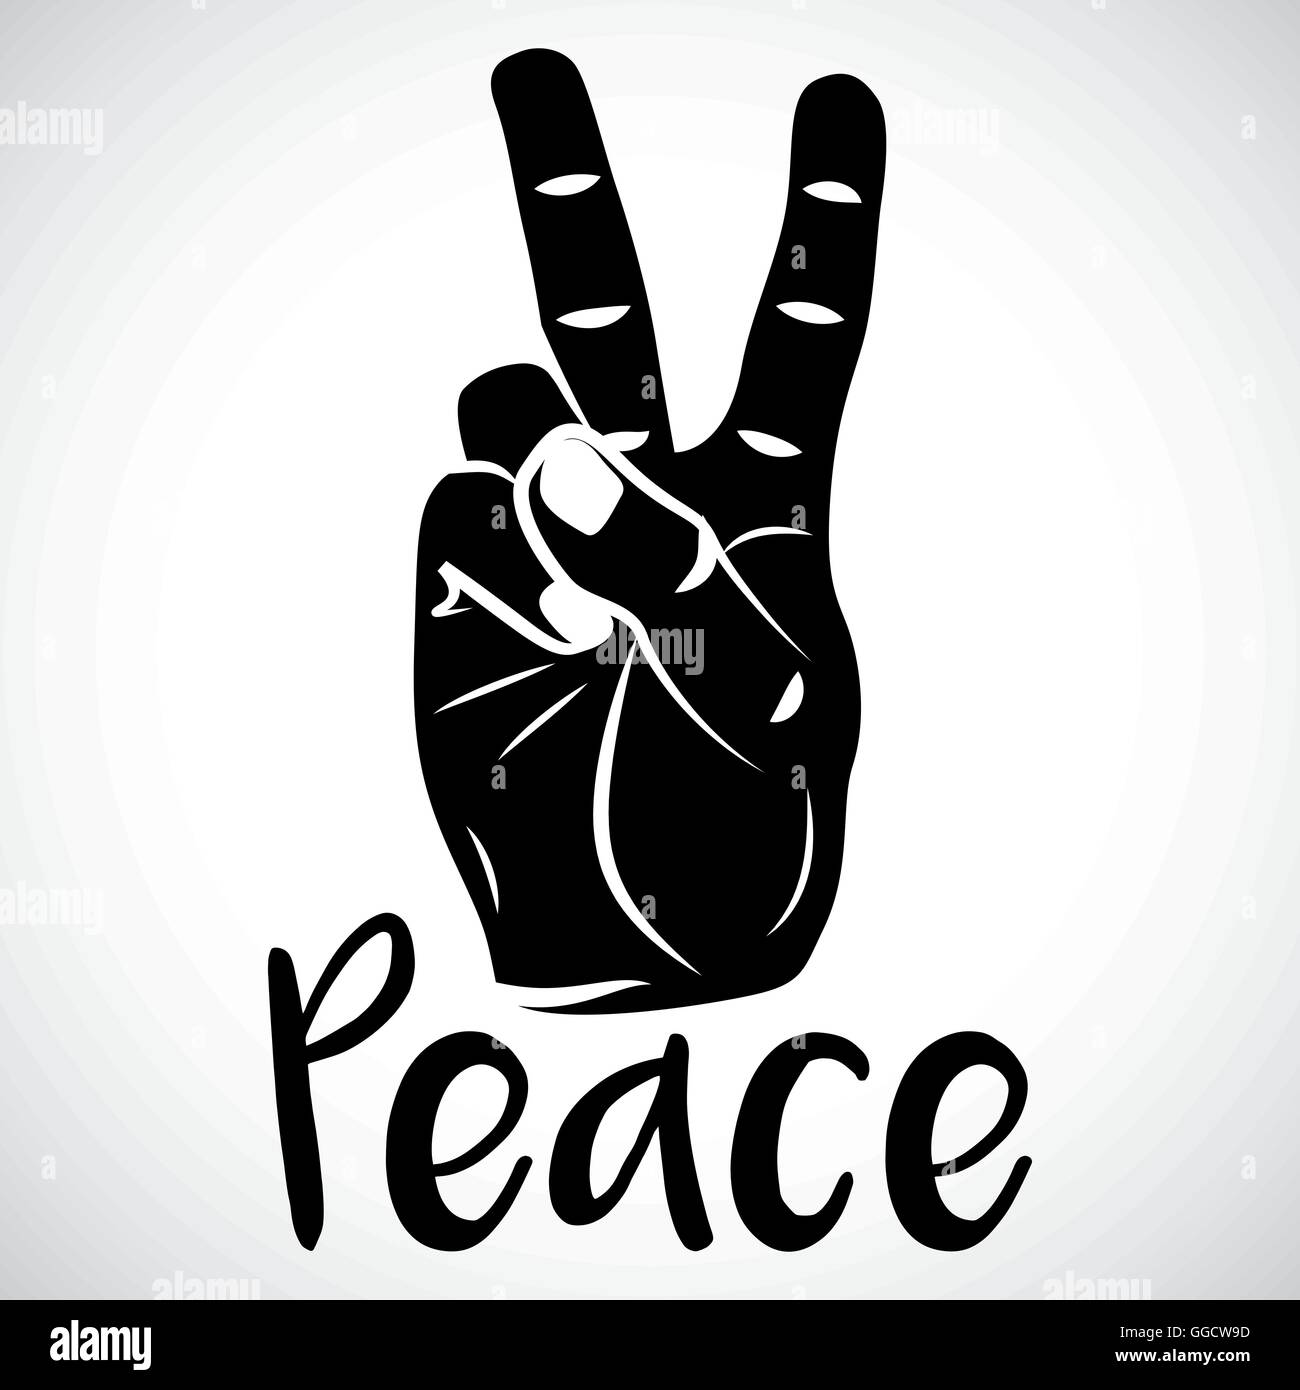 icon hand peace sign for creative use in graphic design stock vector